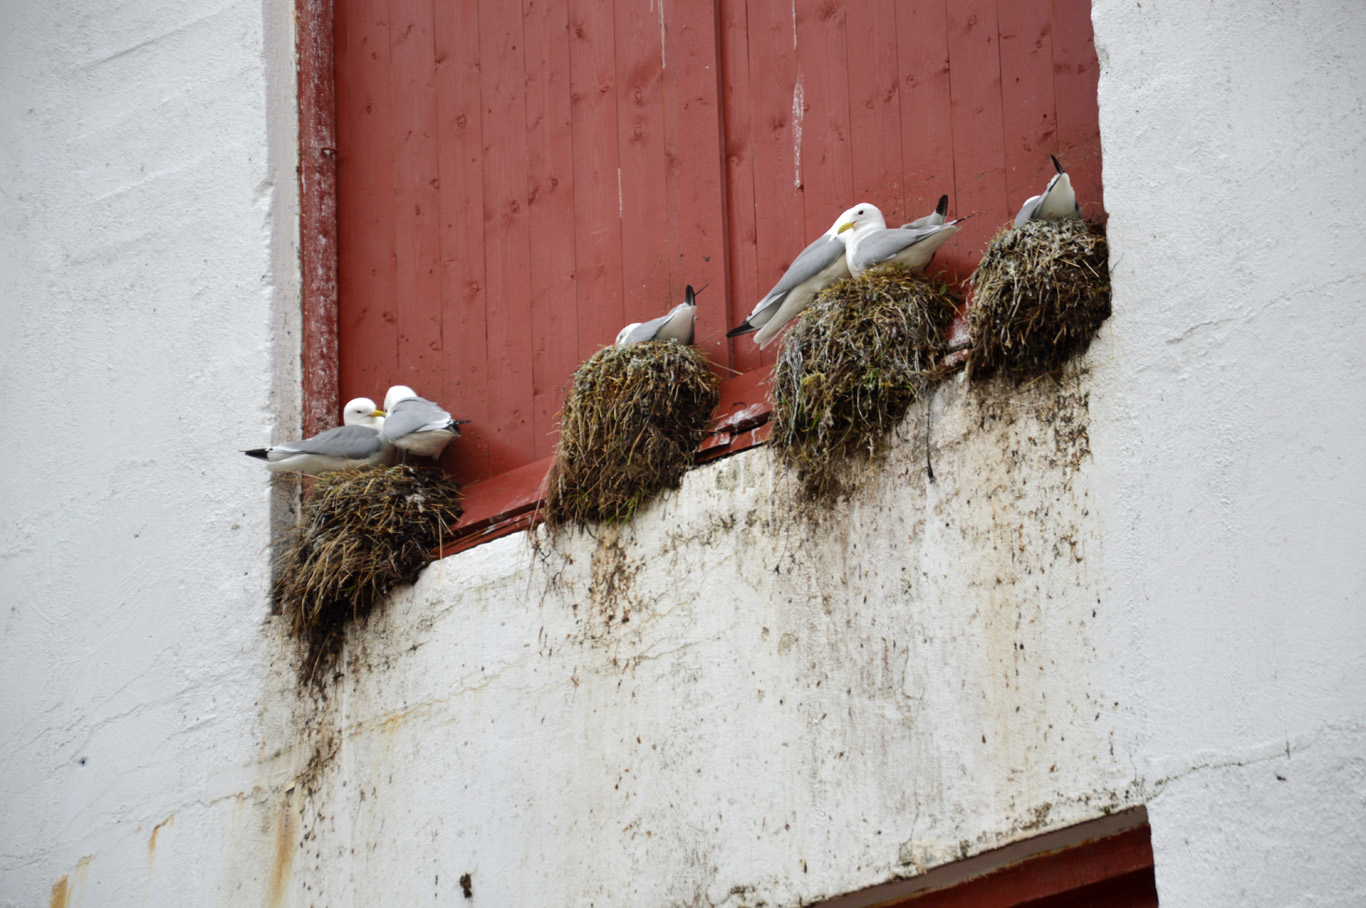 Seagulls have nests everywhere